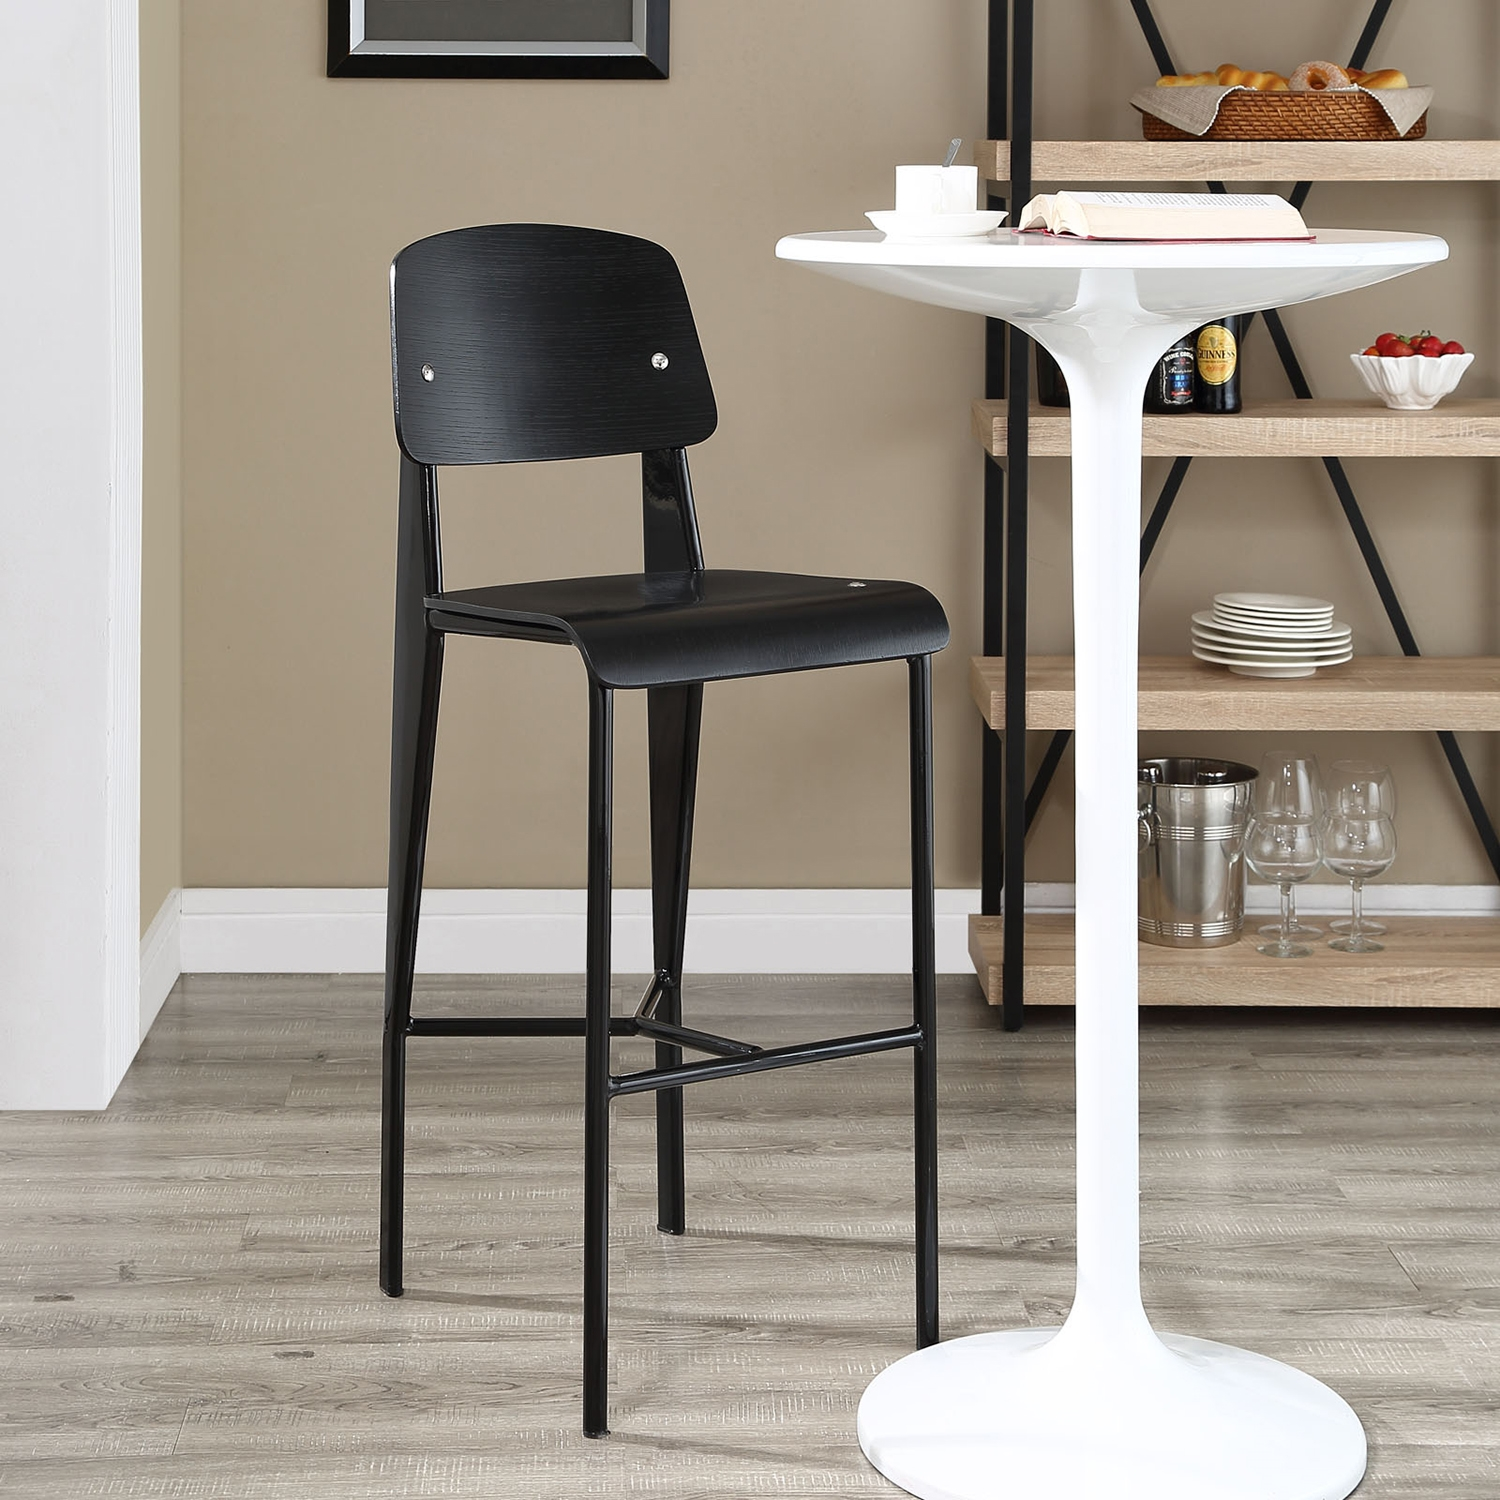 Cabin Armless Bar Stool - Black - EEI-1468-BLK-BLK